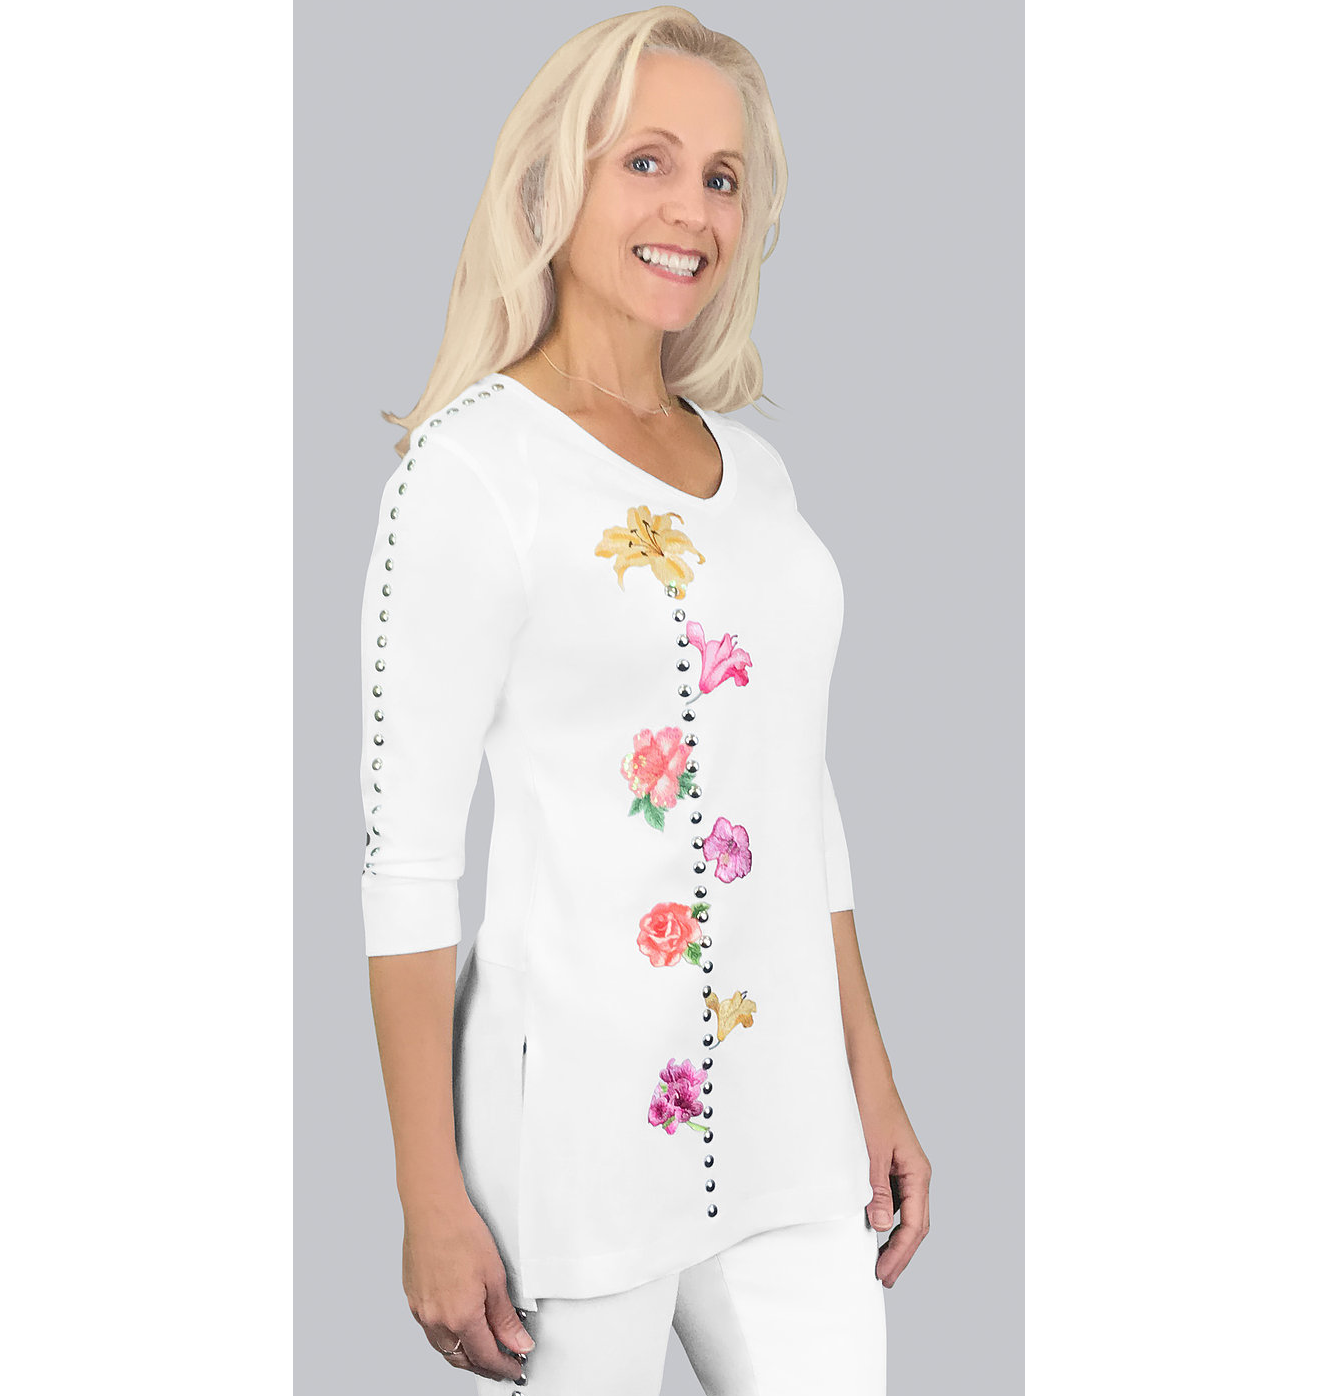 Floral Embroidered White Tunic Top